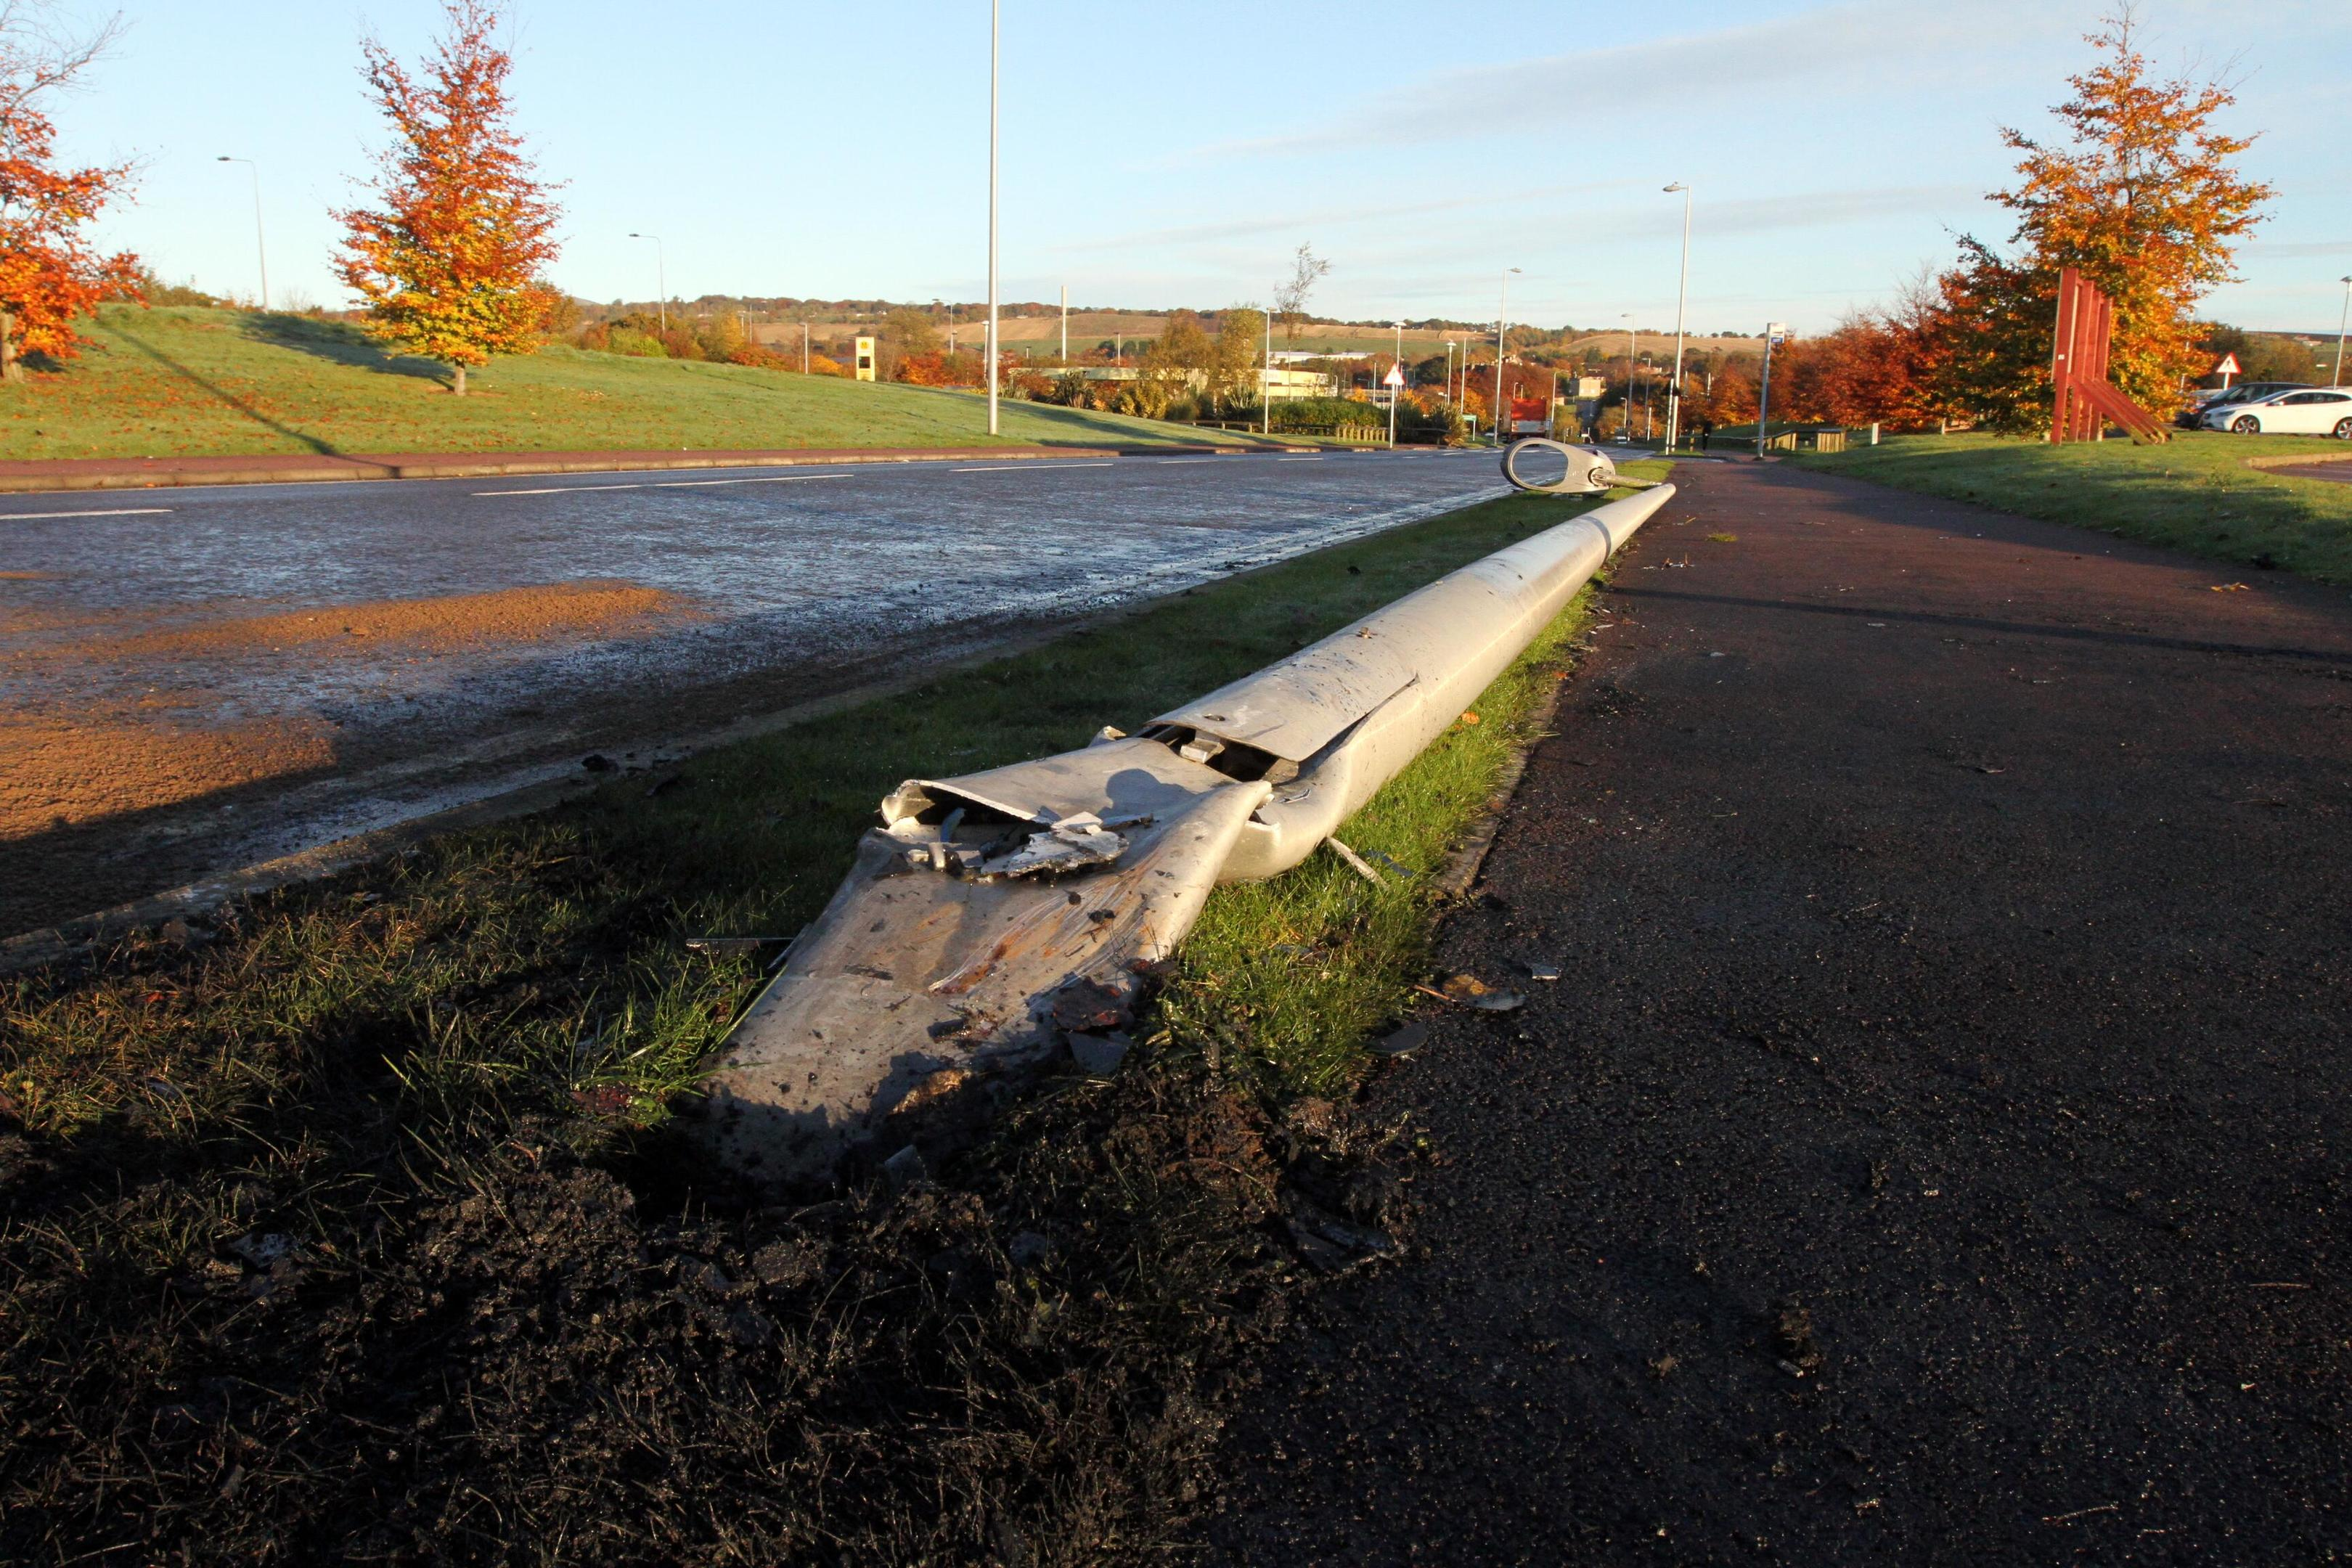 The flattened lamppost at the scene of the fire.